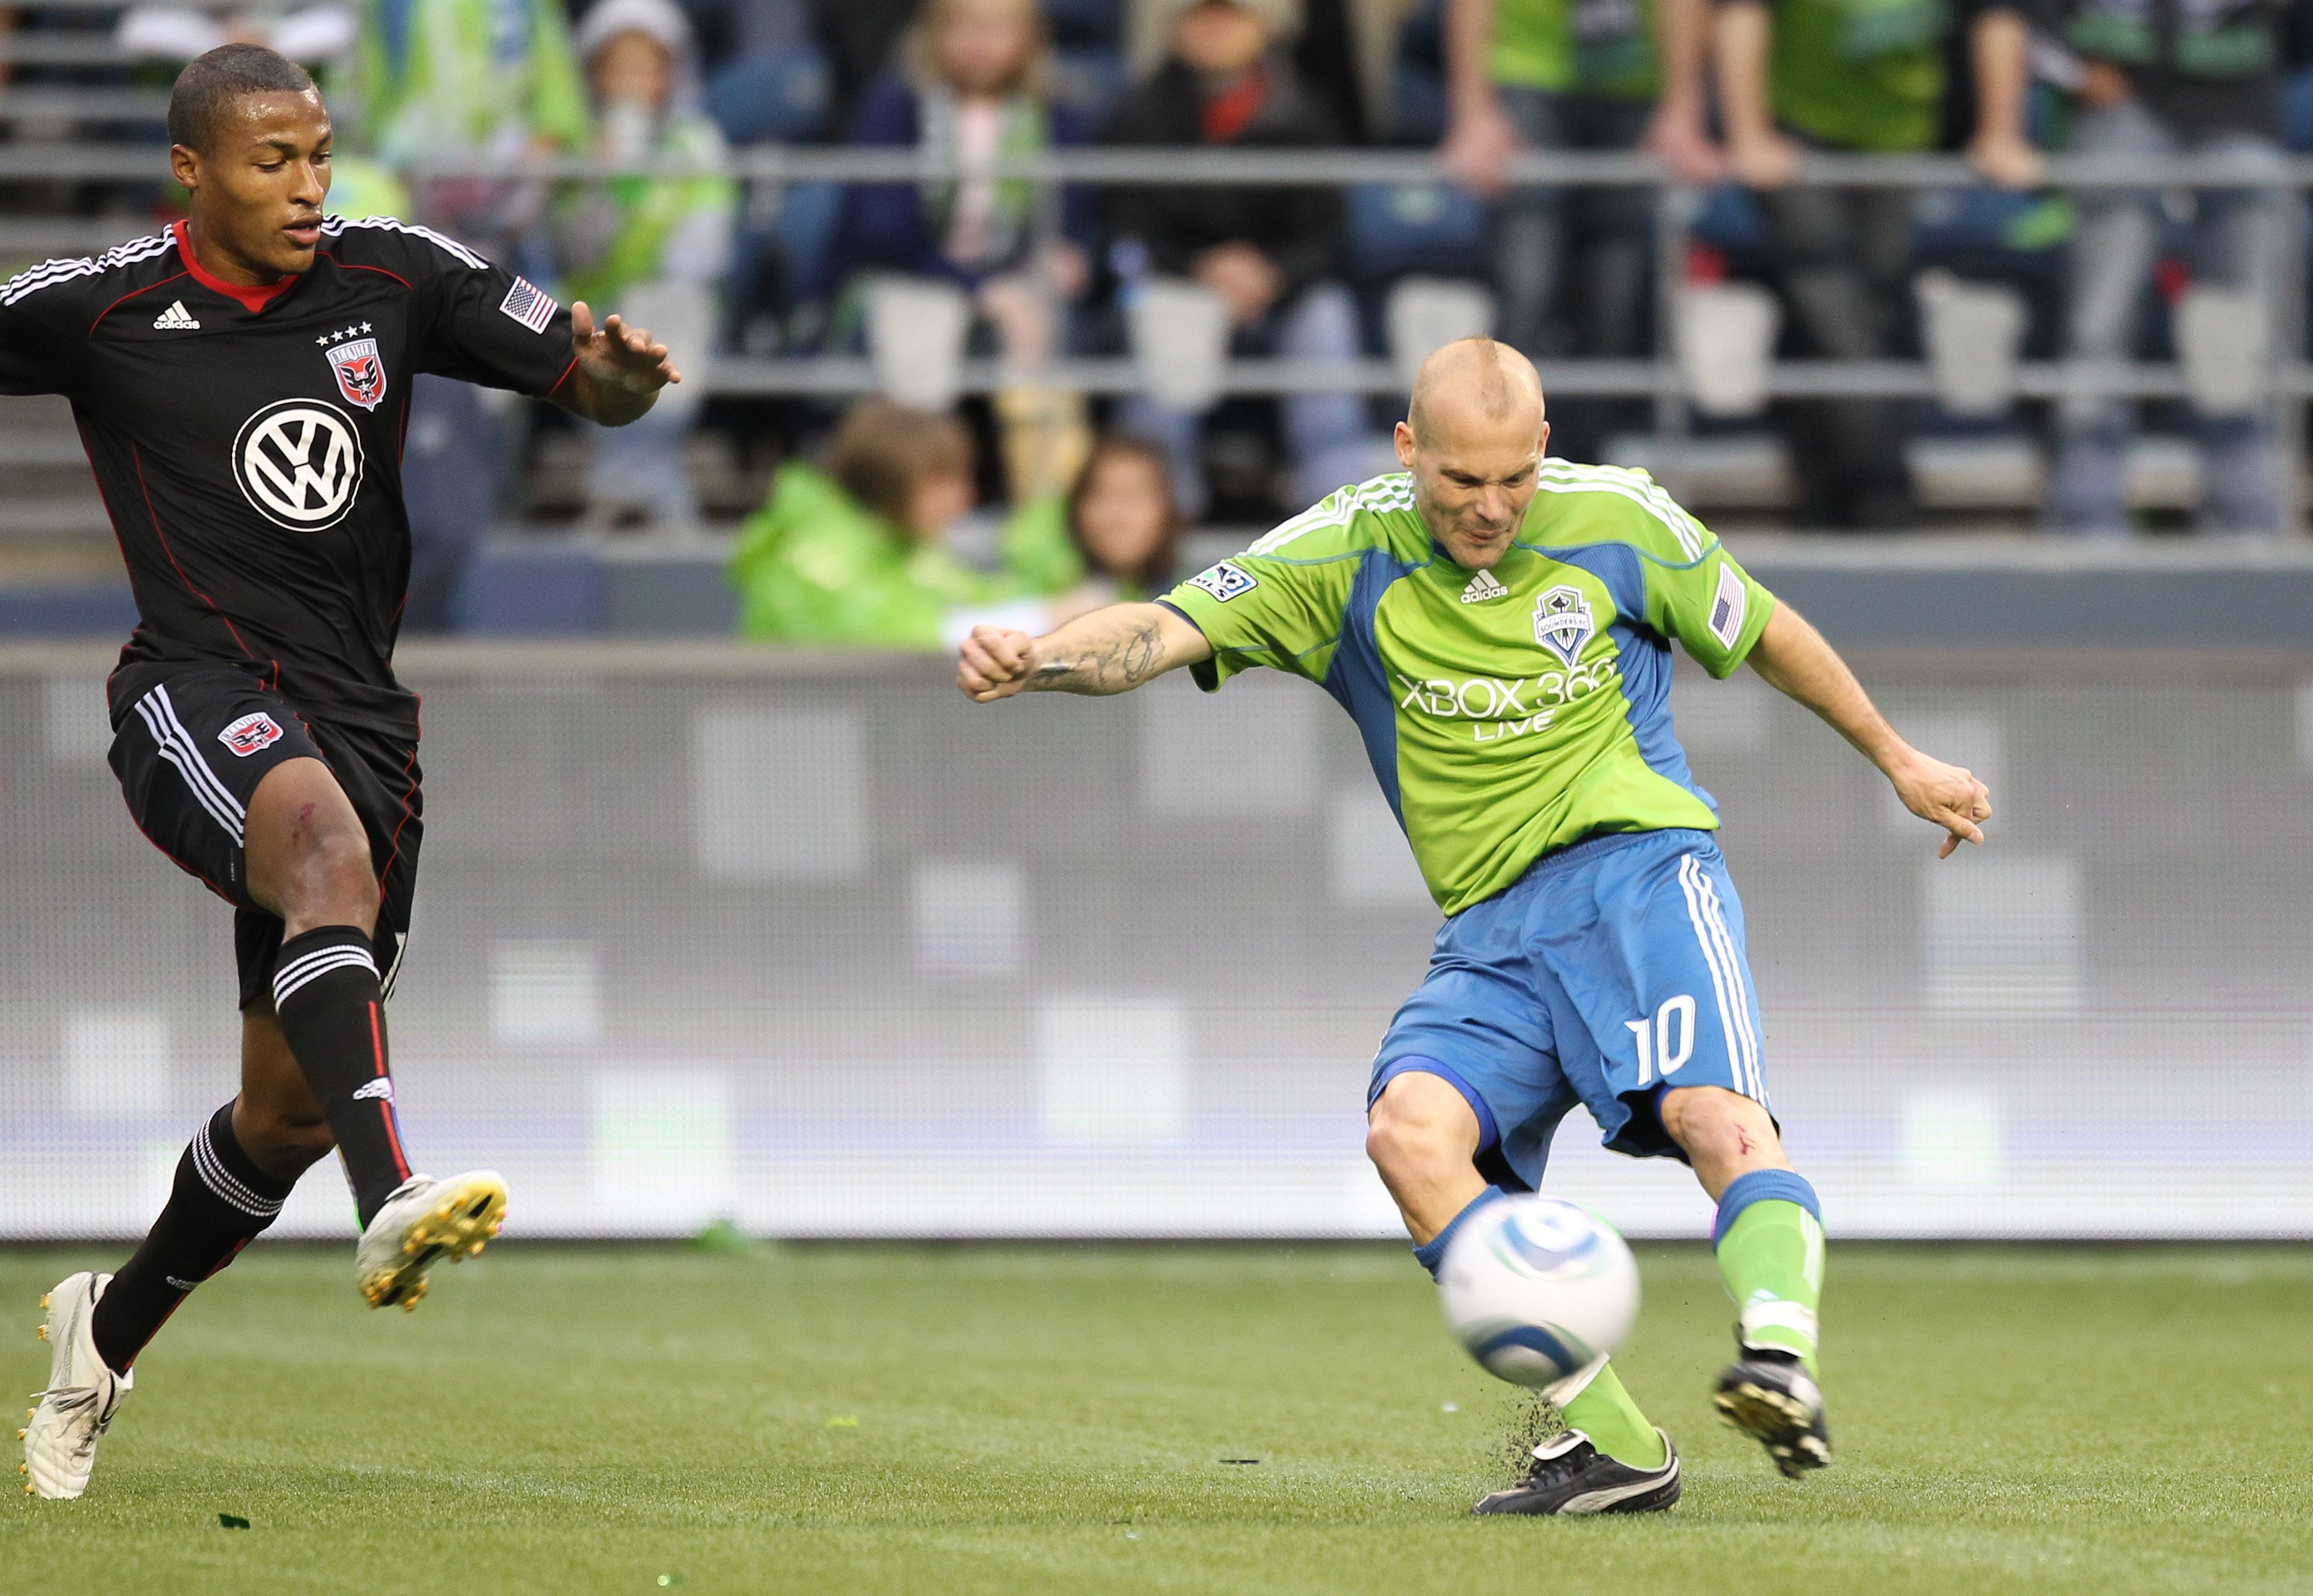 SEATTLE - JUNE 10:  Freddie Ljungberg #10 of the Seattle Sounders FC passes against D.C. United on June 10, 2010 at Qwest Field in Seattle, Washington. (Photo by Otto Greule Jr/Getty Images)